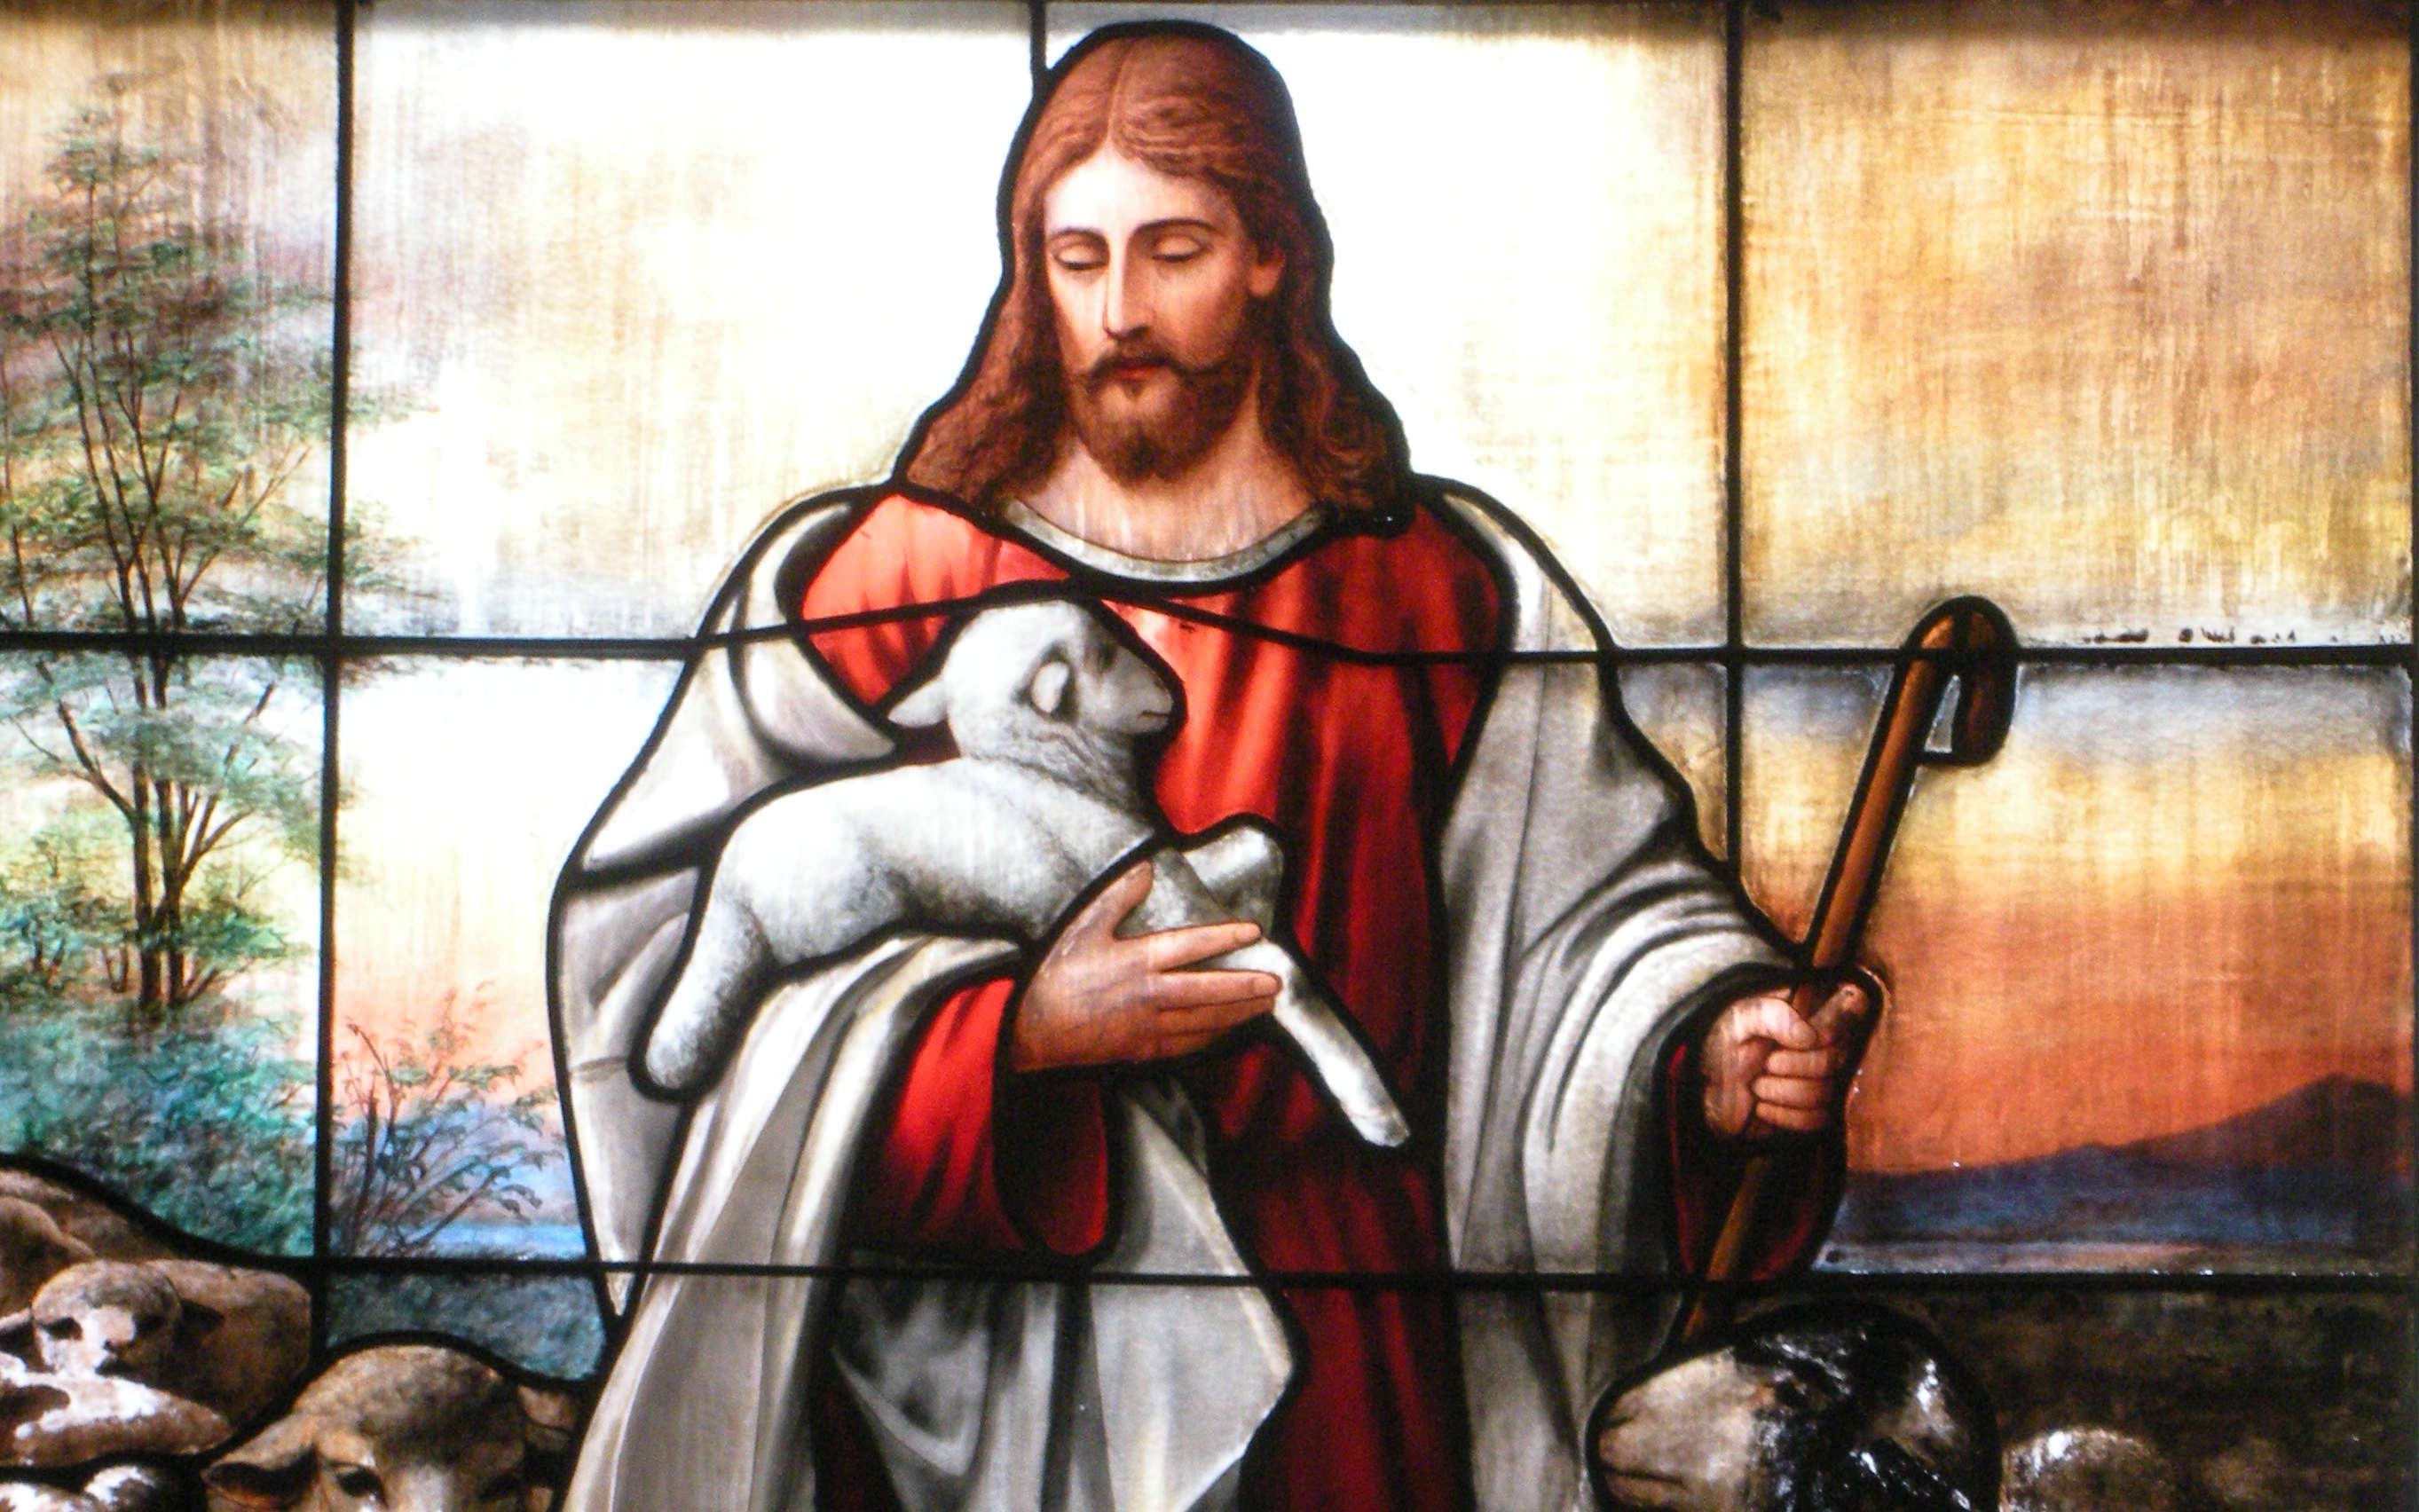 Shepherds like the Lord Asterius of Amasea Jesus Christ the Good Shepherd lent gently bring back lost stray sheep to flock